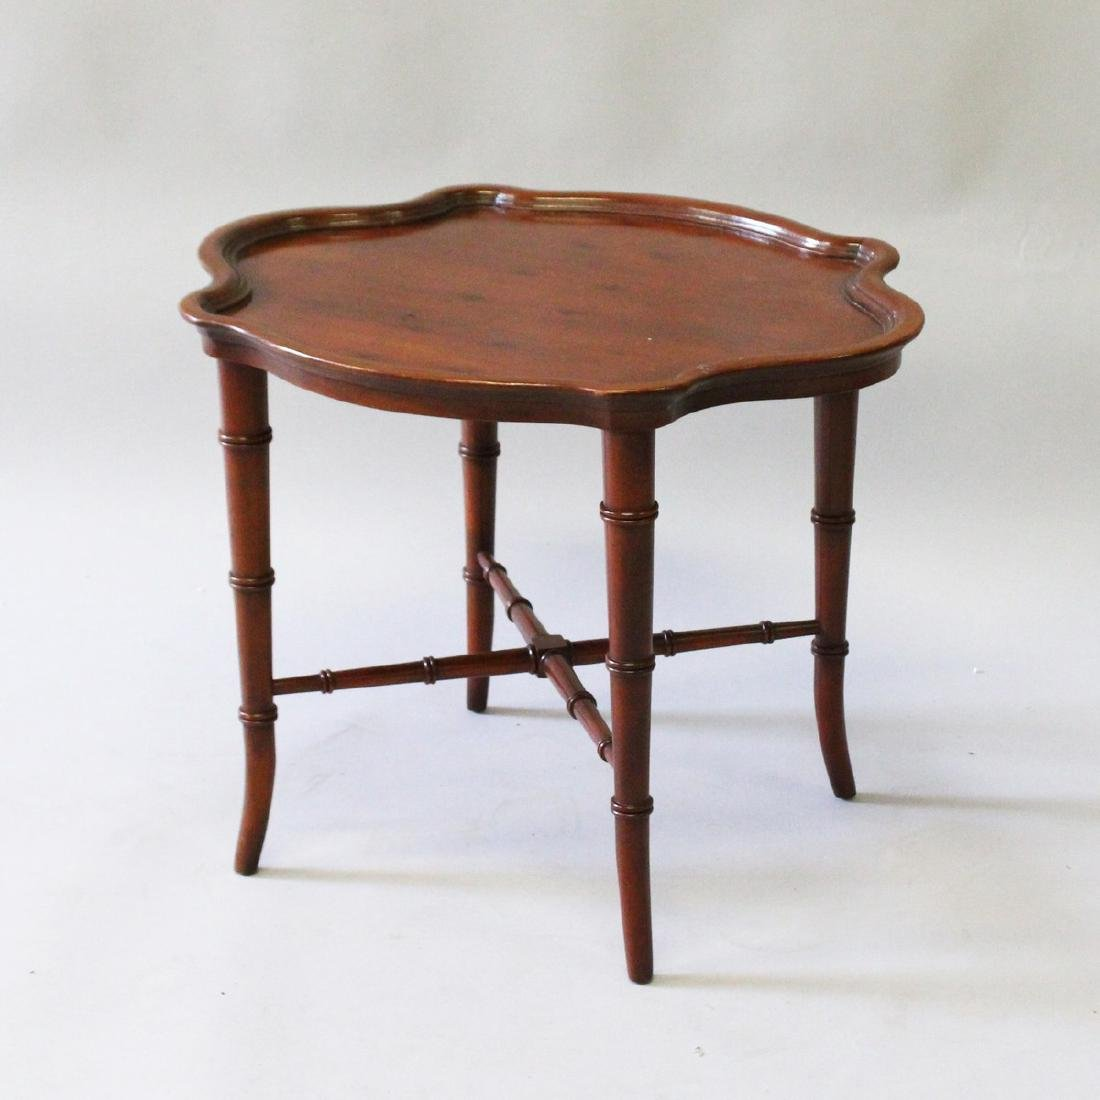 A SMALL MAHOGANY SHAPED TOP COFFEE TABLE on bamboo type